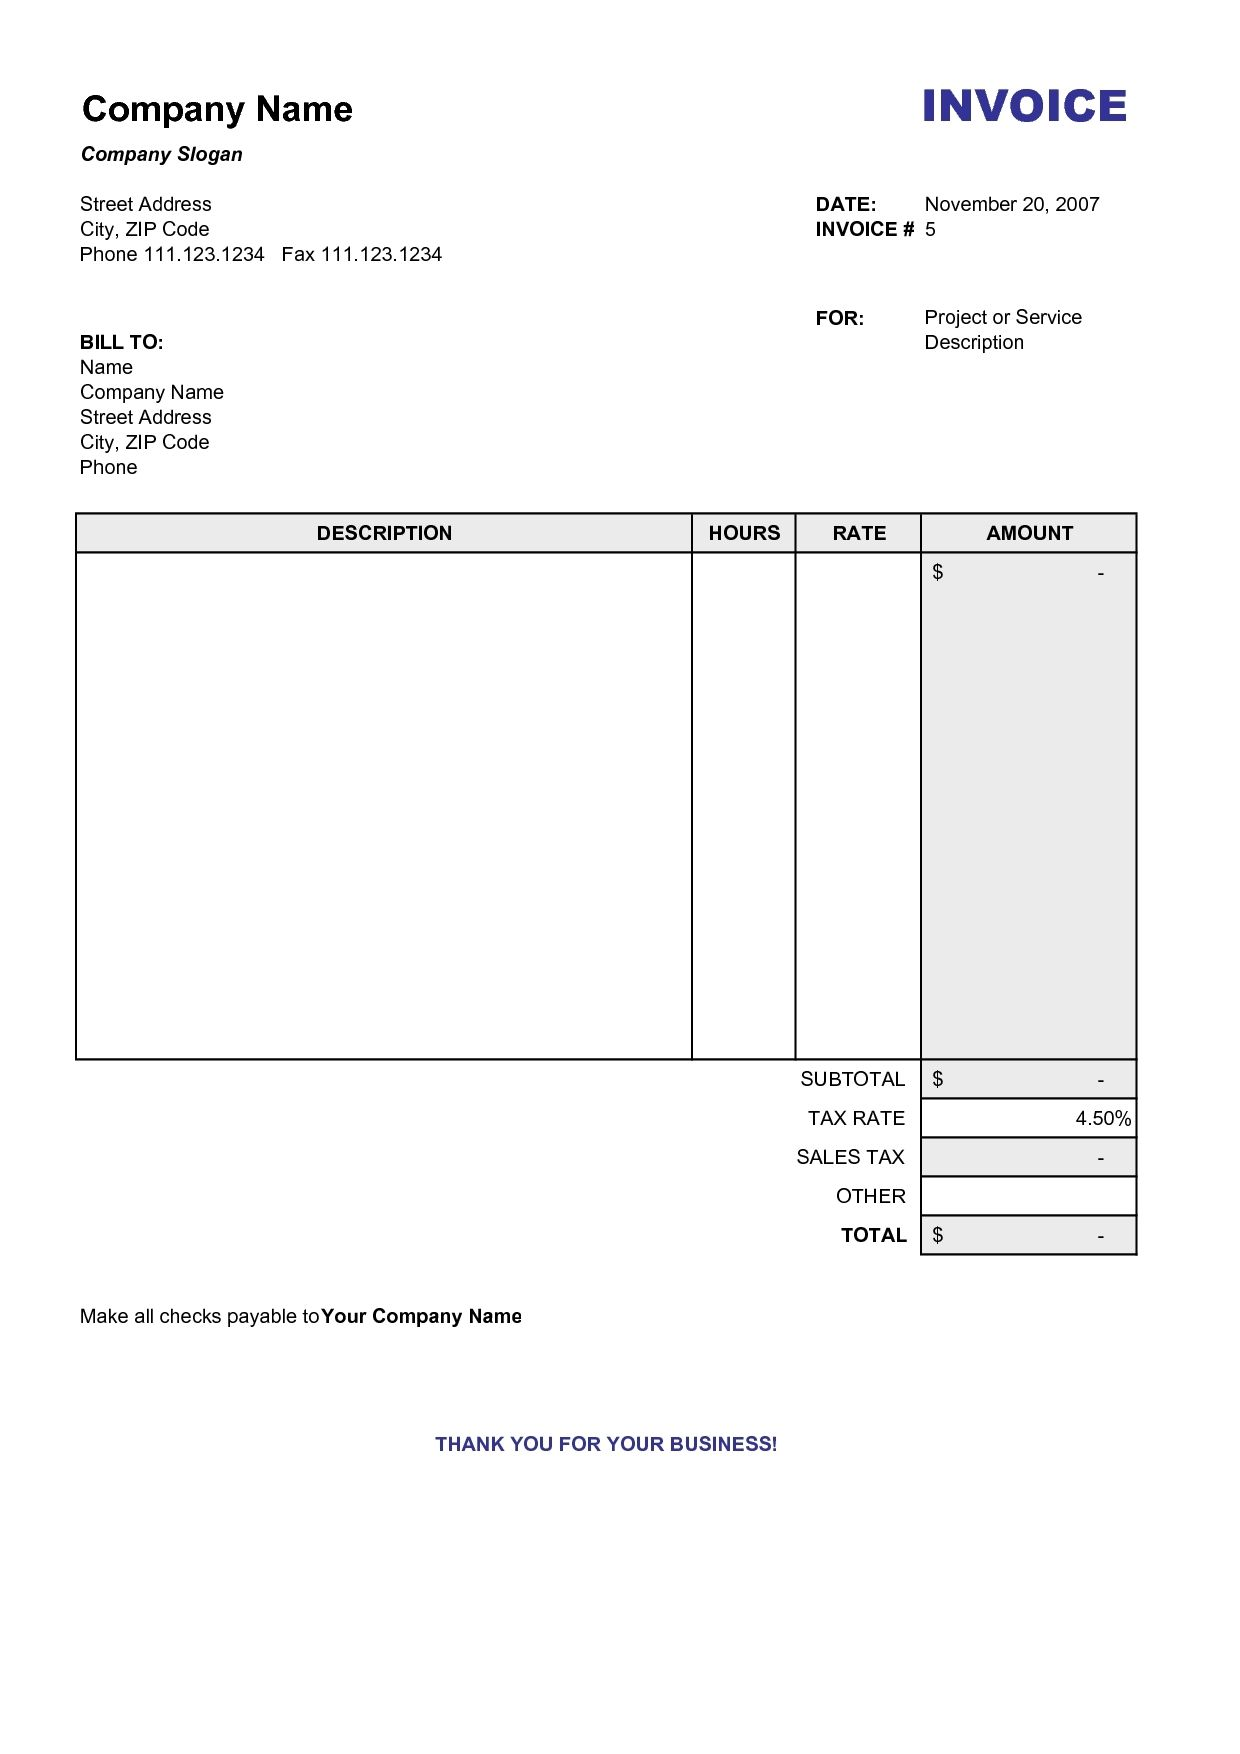 copy of a blank invoice invoice template free 2016 copy of blank ...